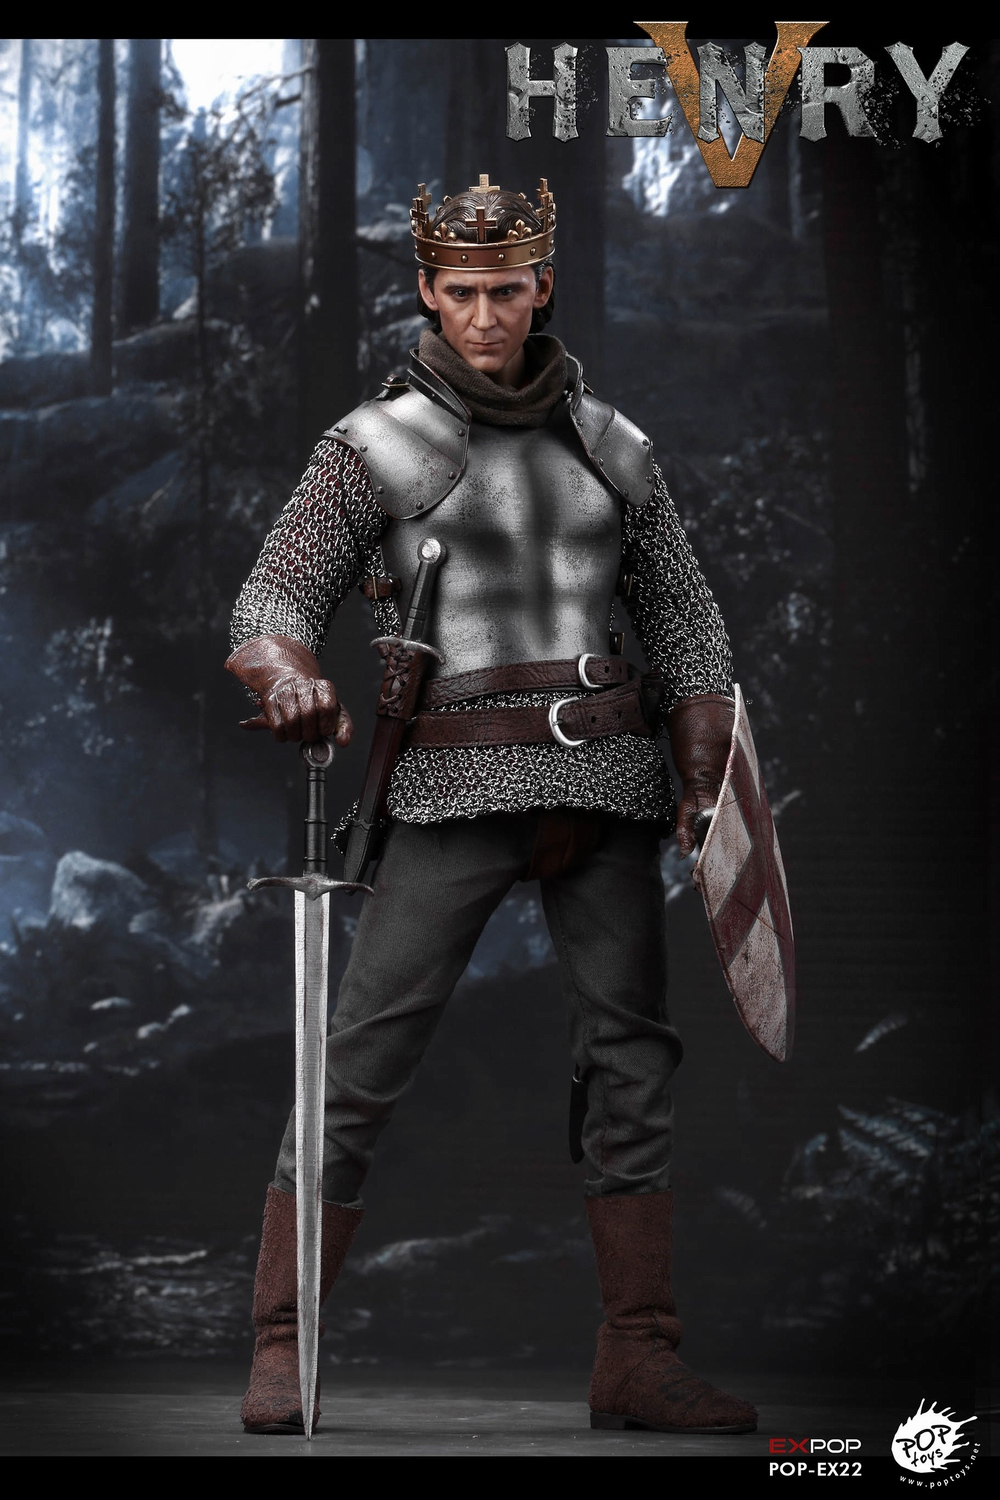 poptoys - NEW PRODUCT: POPTOYS: 1/6 EX22 King Henry V of England, double head sculptures & horse 21580010